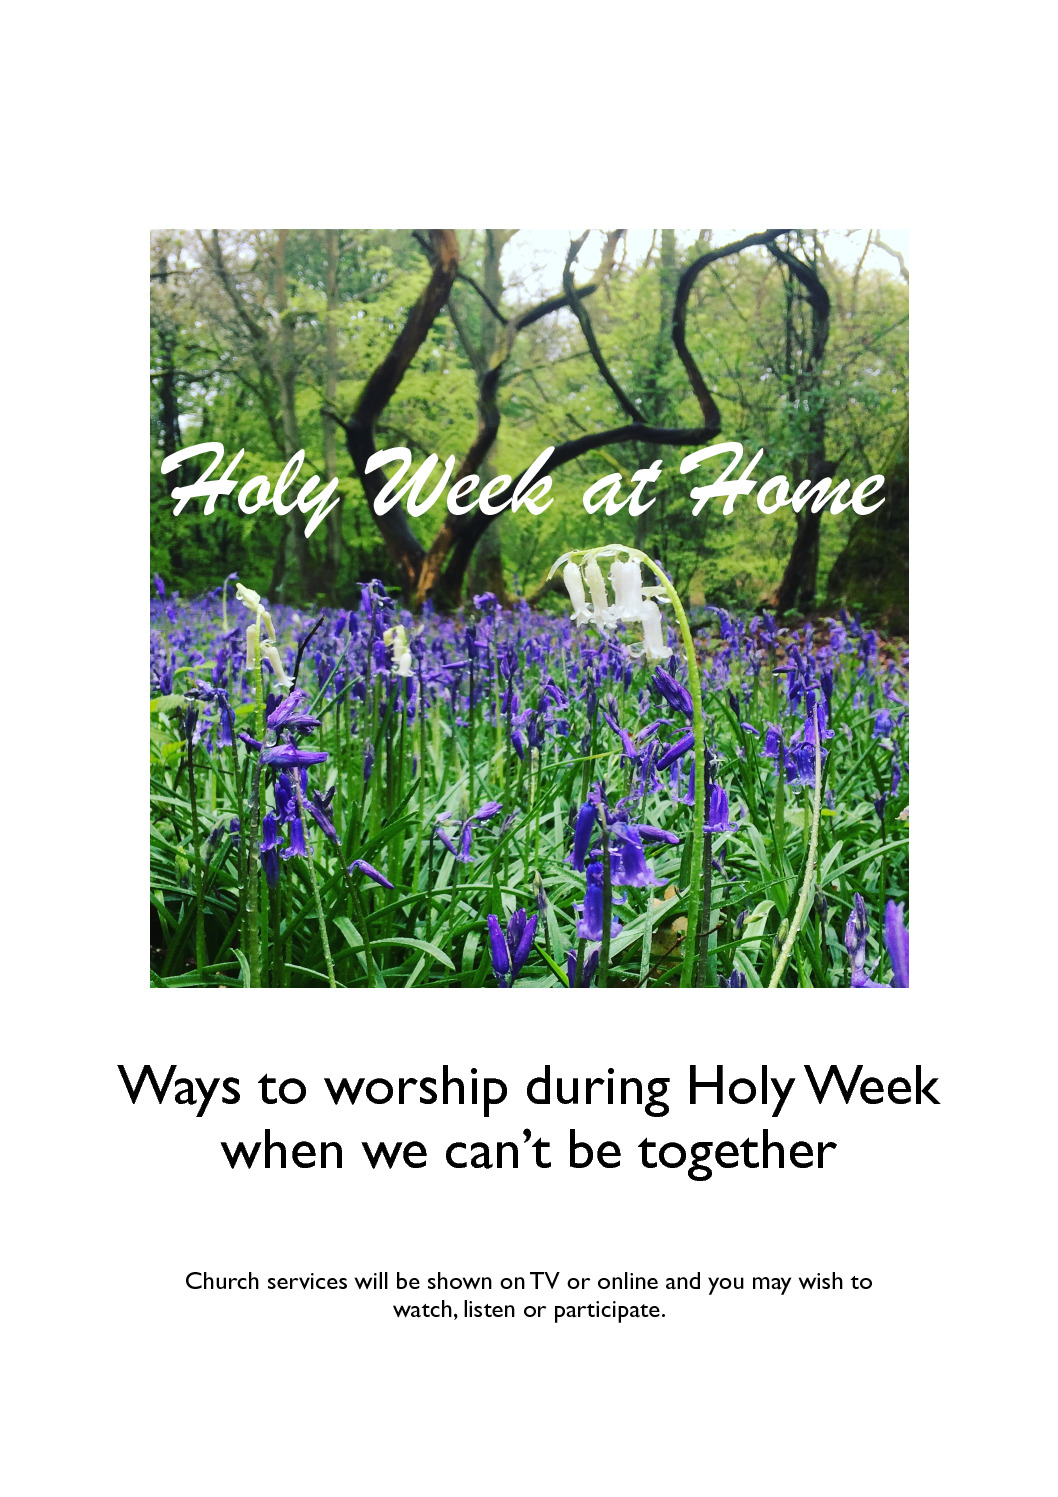 thumbnail of Holy week at home generic